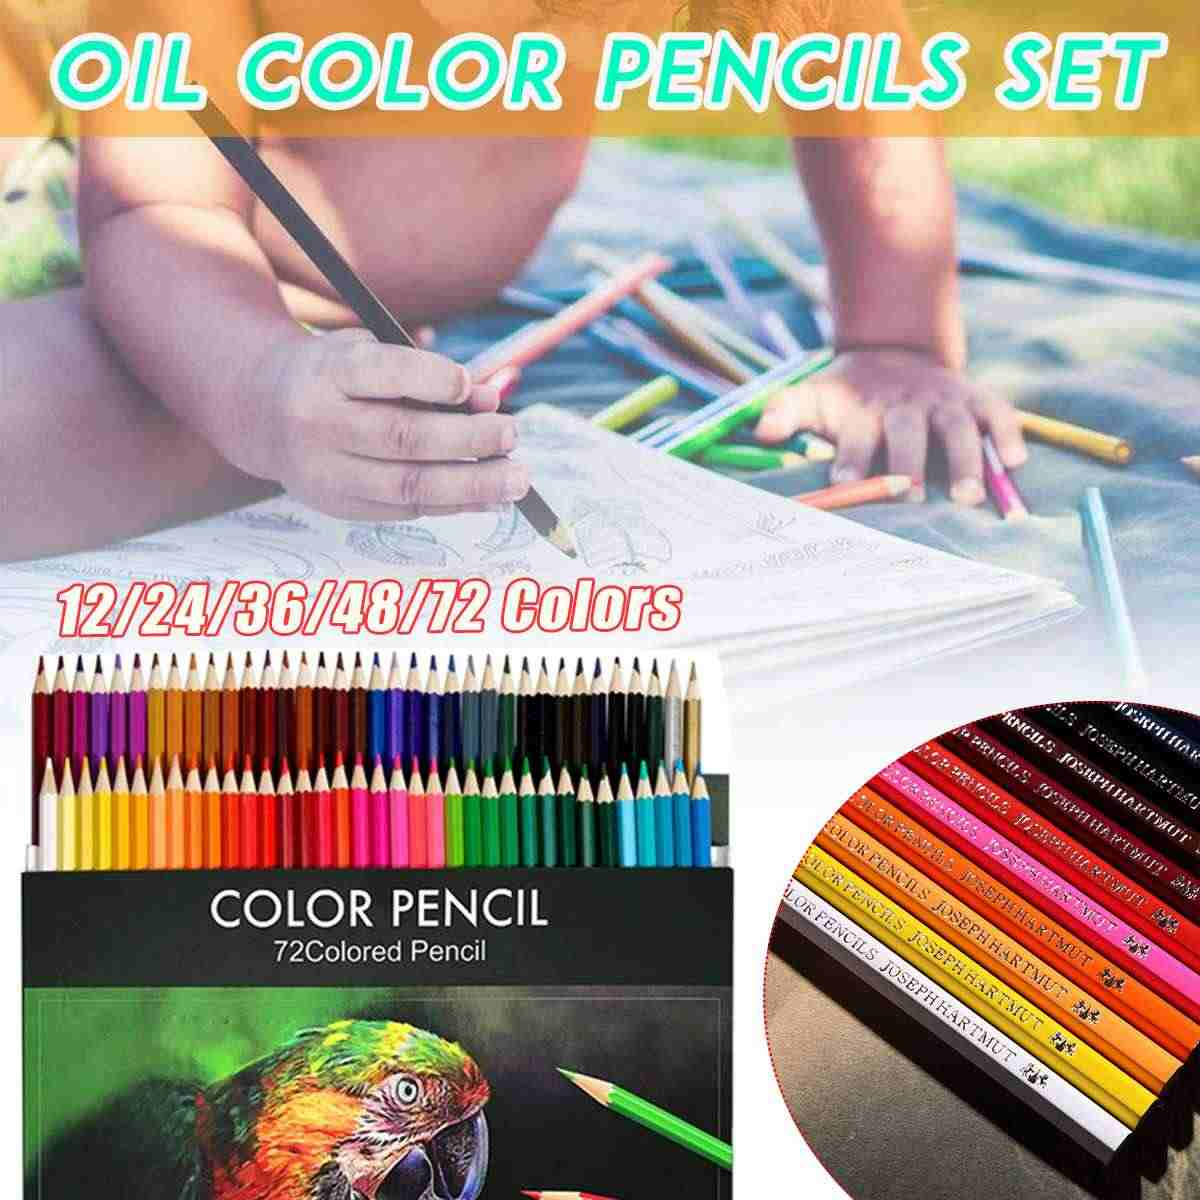 18 Colors Wooded Colored Pencils Artist Painting Oil Color Wood Pencil for School Drawing Sketch Art Supplies